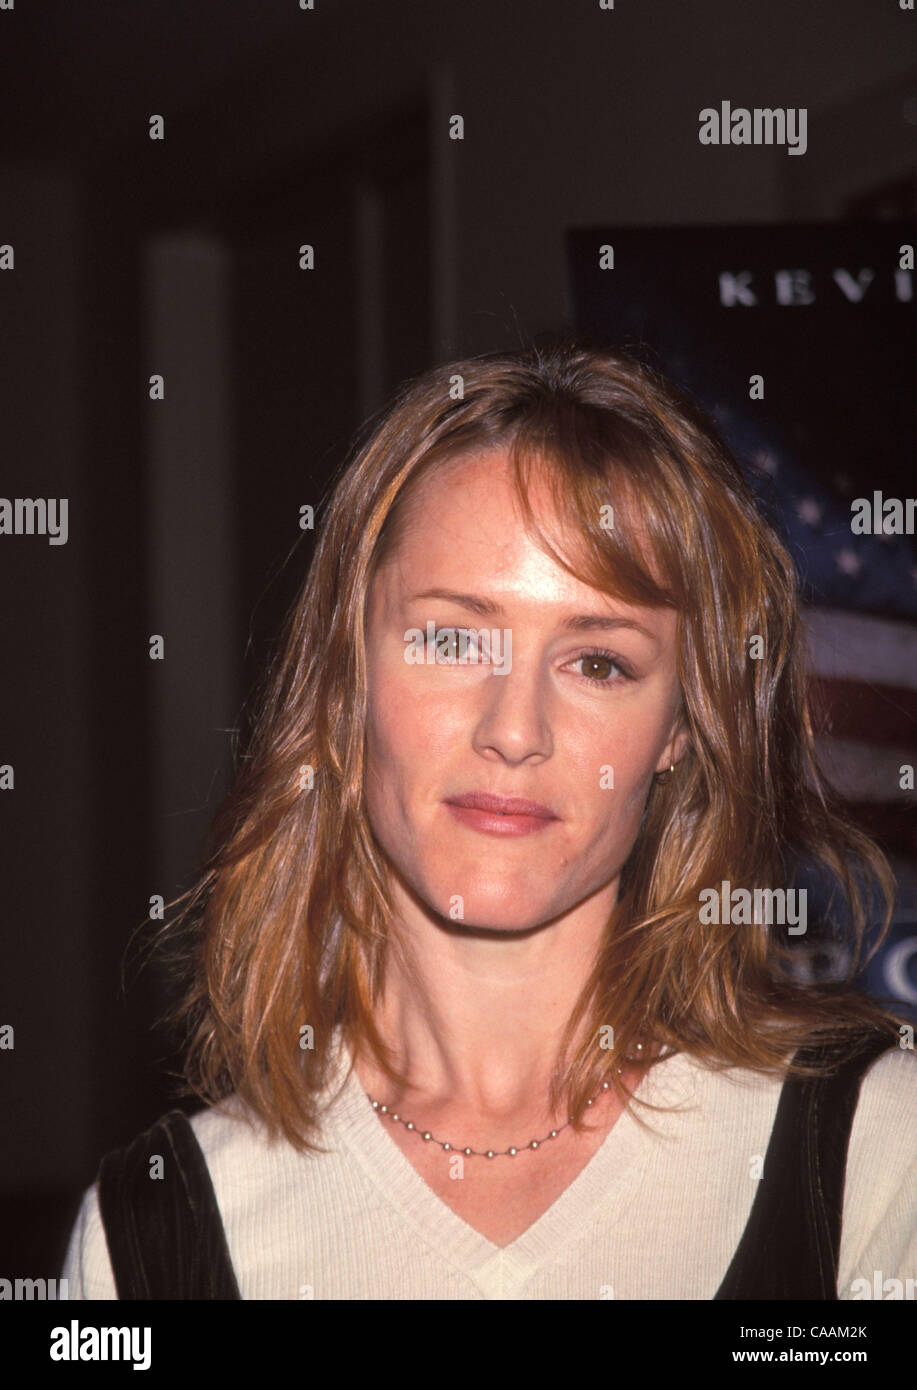 Oct 15, 2003; New York, NY, USA; File photo. Date unknown. Actress MARY STUART MASTERSON. Stock Photo